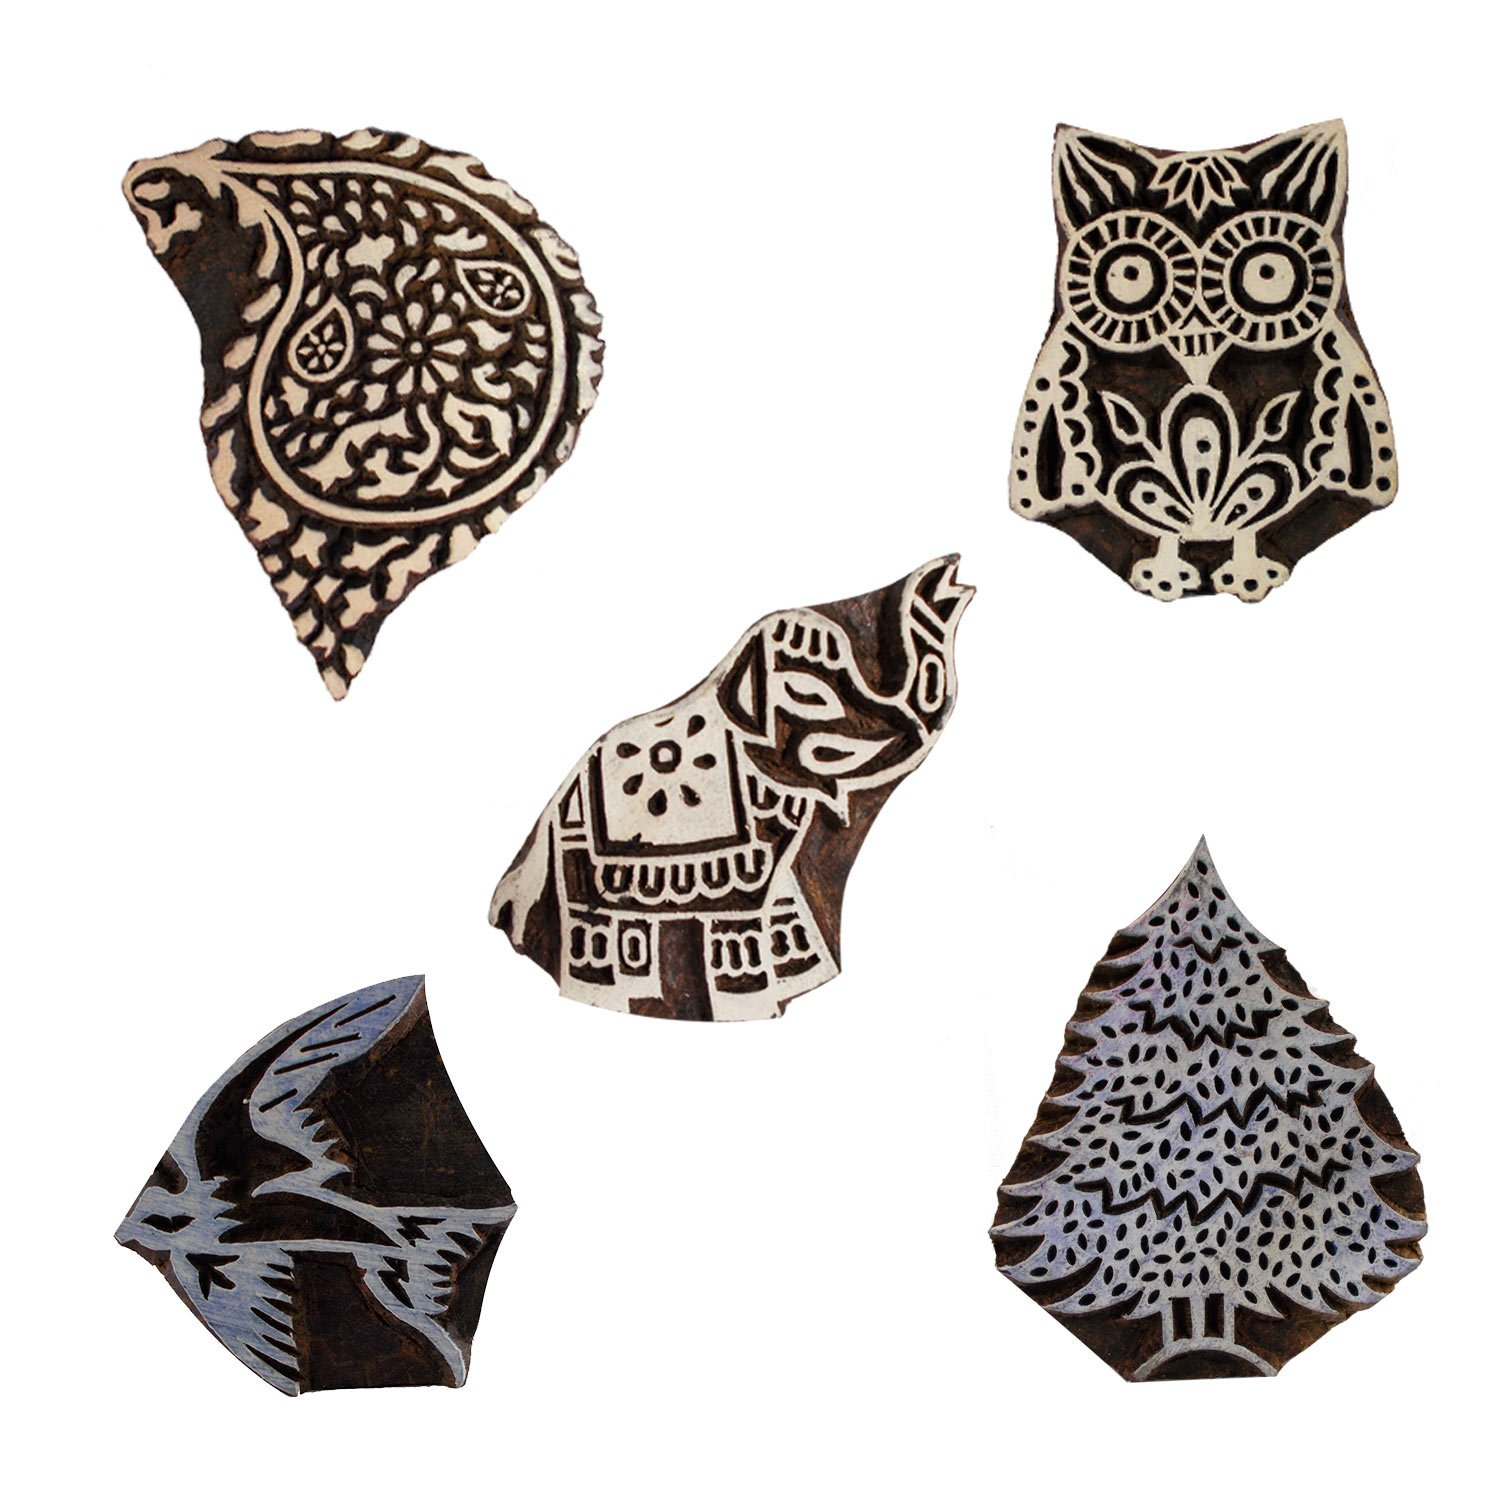 Lot of 5 Wooden Textile Handmade Paisley Bird Tree Owl Elephant Printing Textile Block Clay Potter Craft Scrapbook Stamps